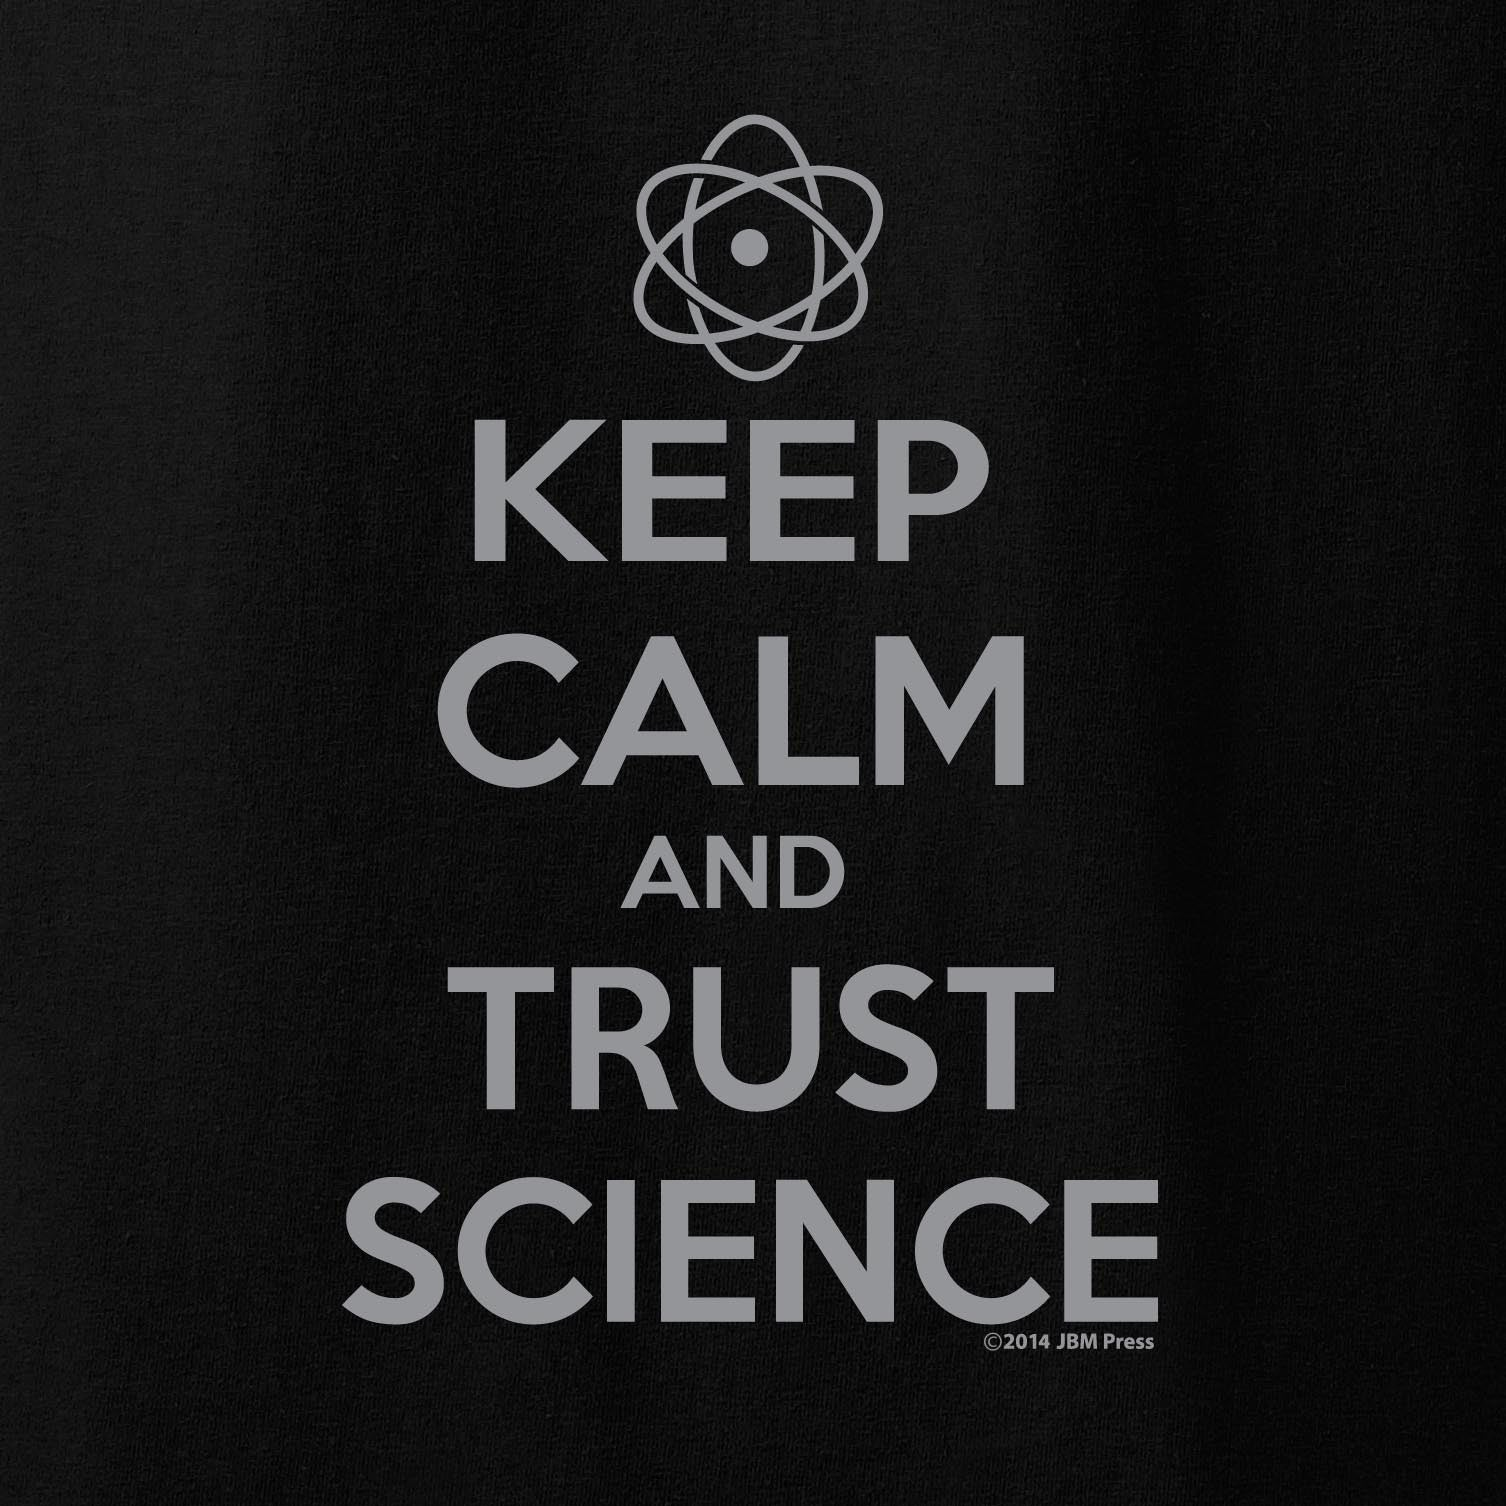 Keep Calm and Trust Science - JBM Press  - 1